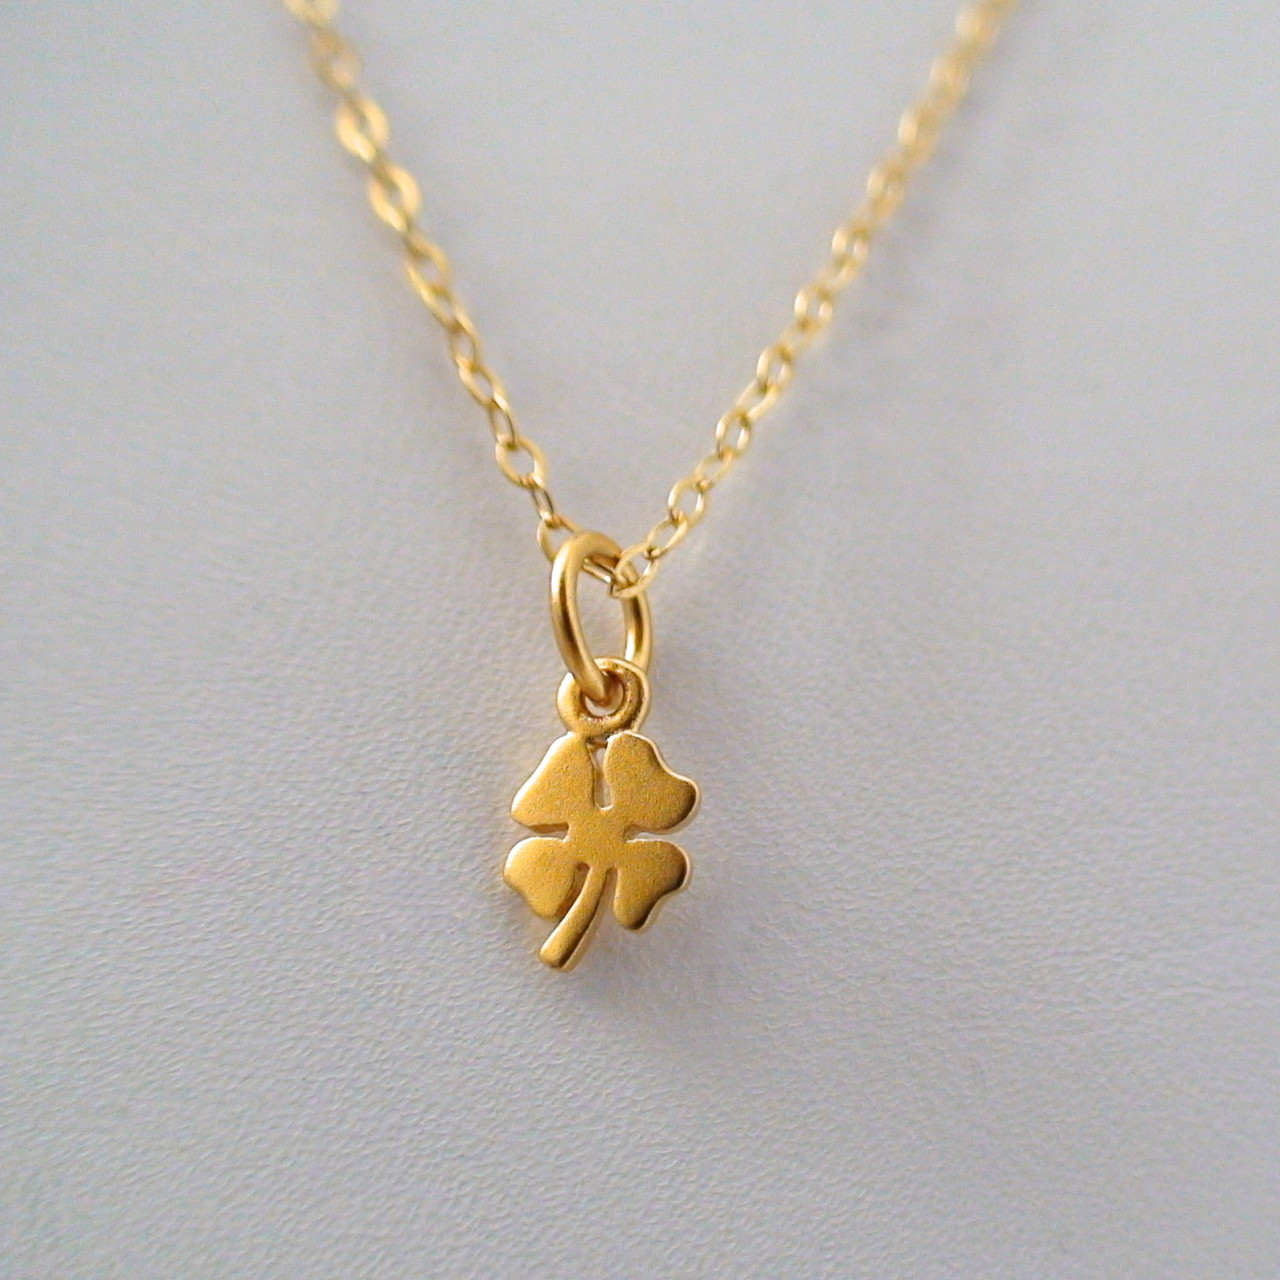 sveaas tiny tilly gold necklace jewellery shop on sign peace trace chain